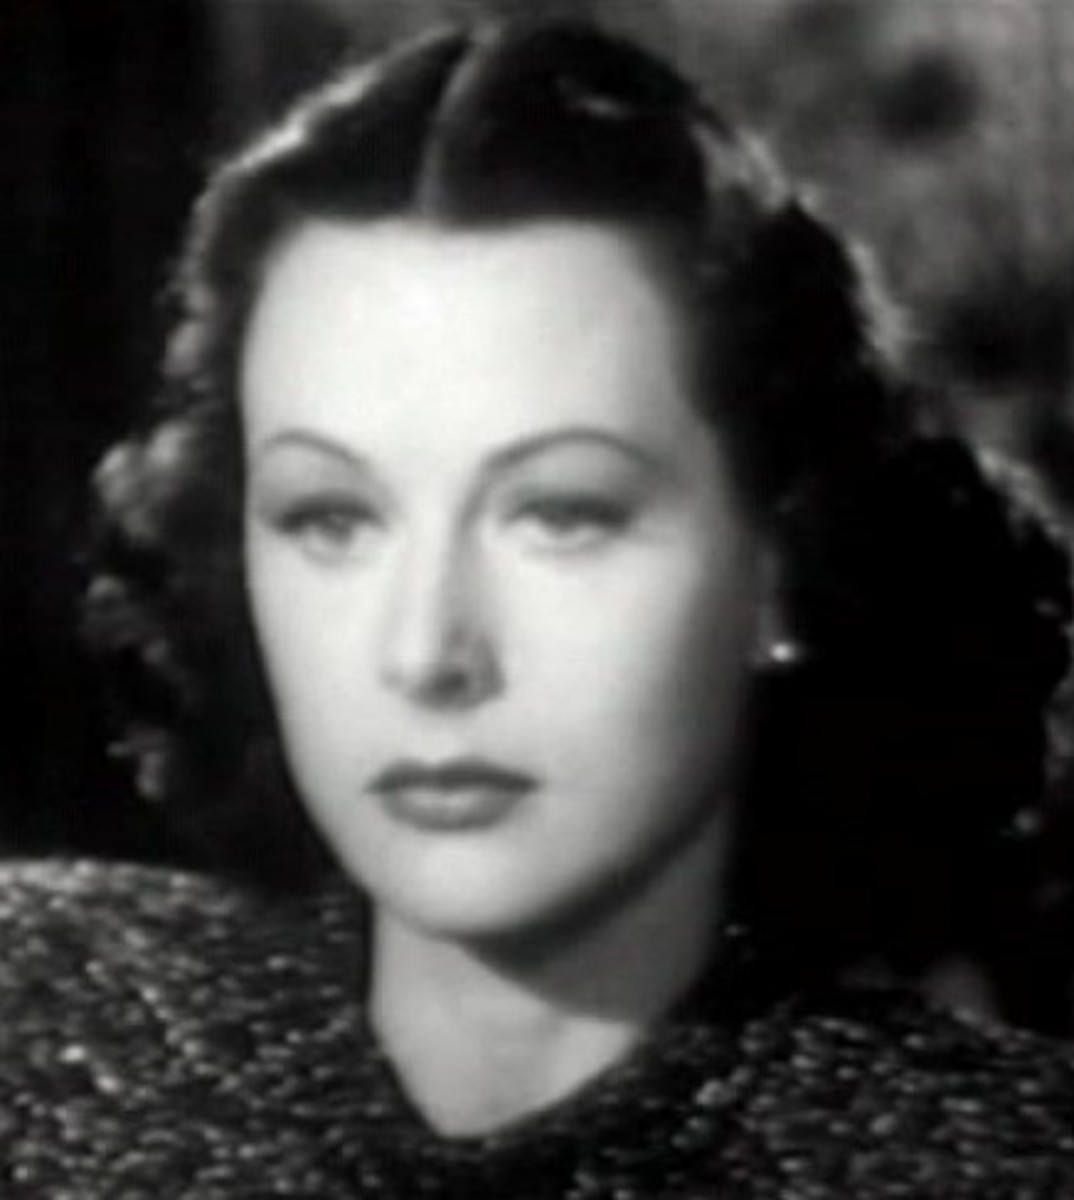 Hedy Lamarr wears a style that broadens at the base of her jaw, rounding out a long thin face shape and making it look more heart-shaped.